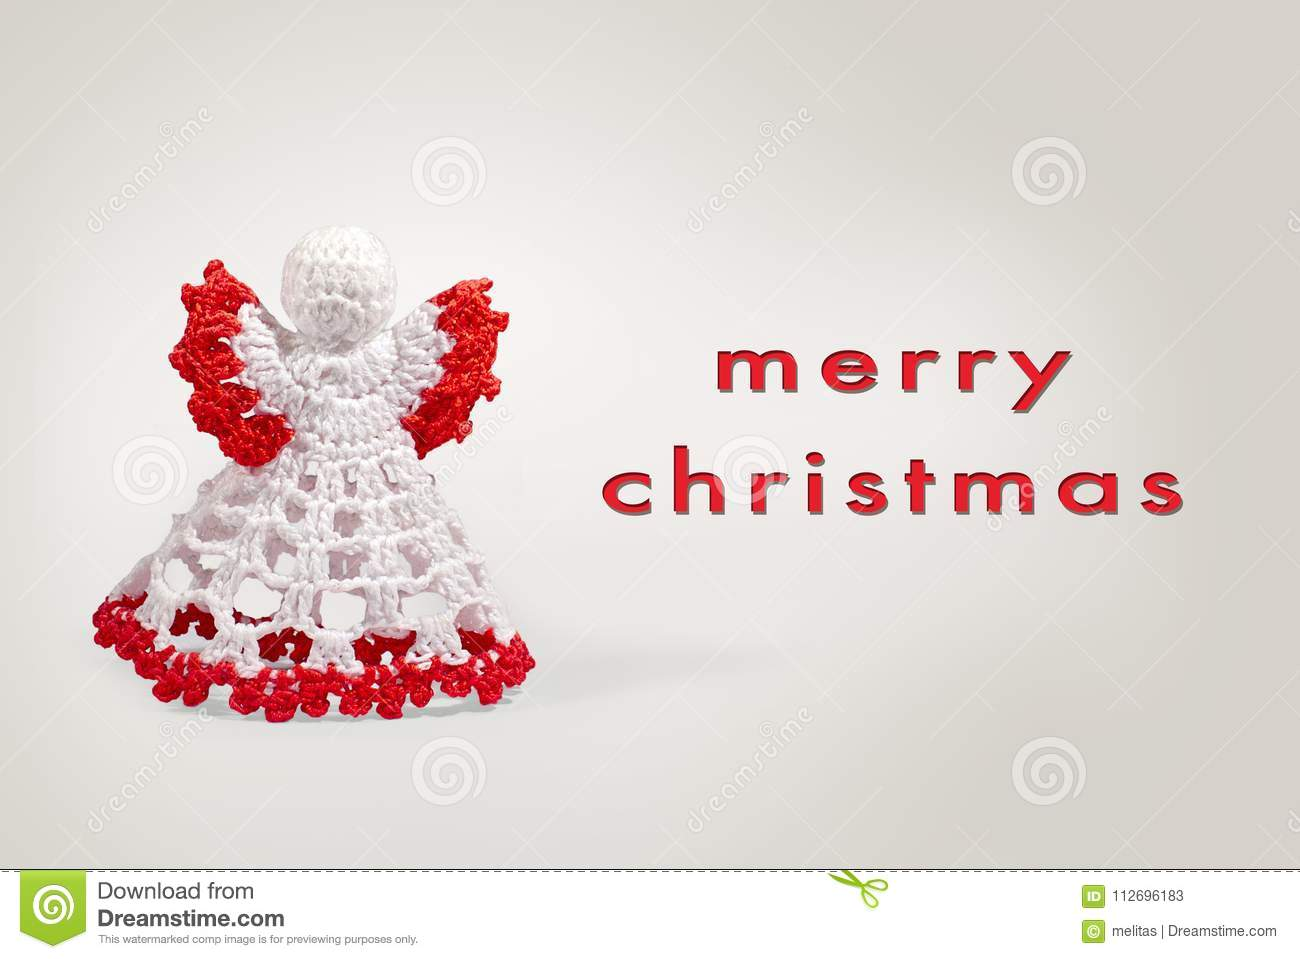 Greeting card angel crochet with merry christmas writing stock image download greeting card angel crochet with merry christmas writing stock image image of festive m4hsunfo